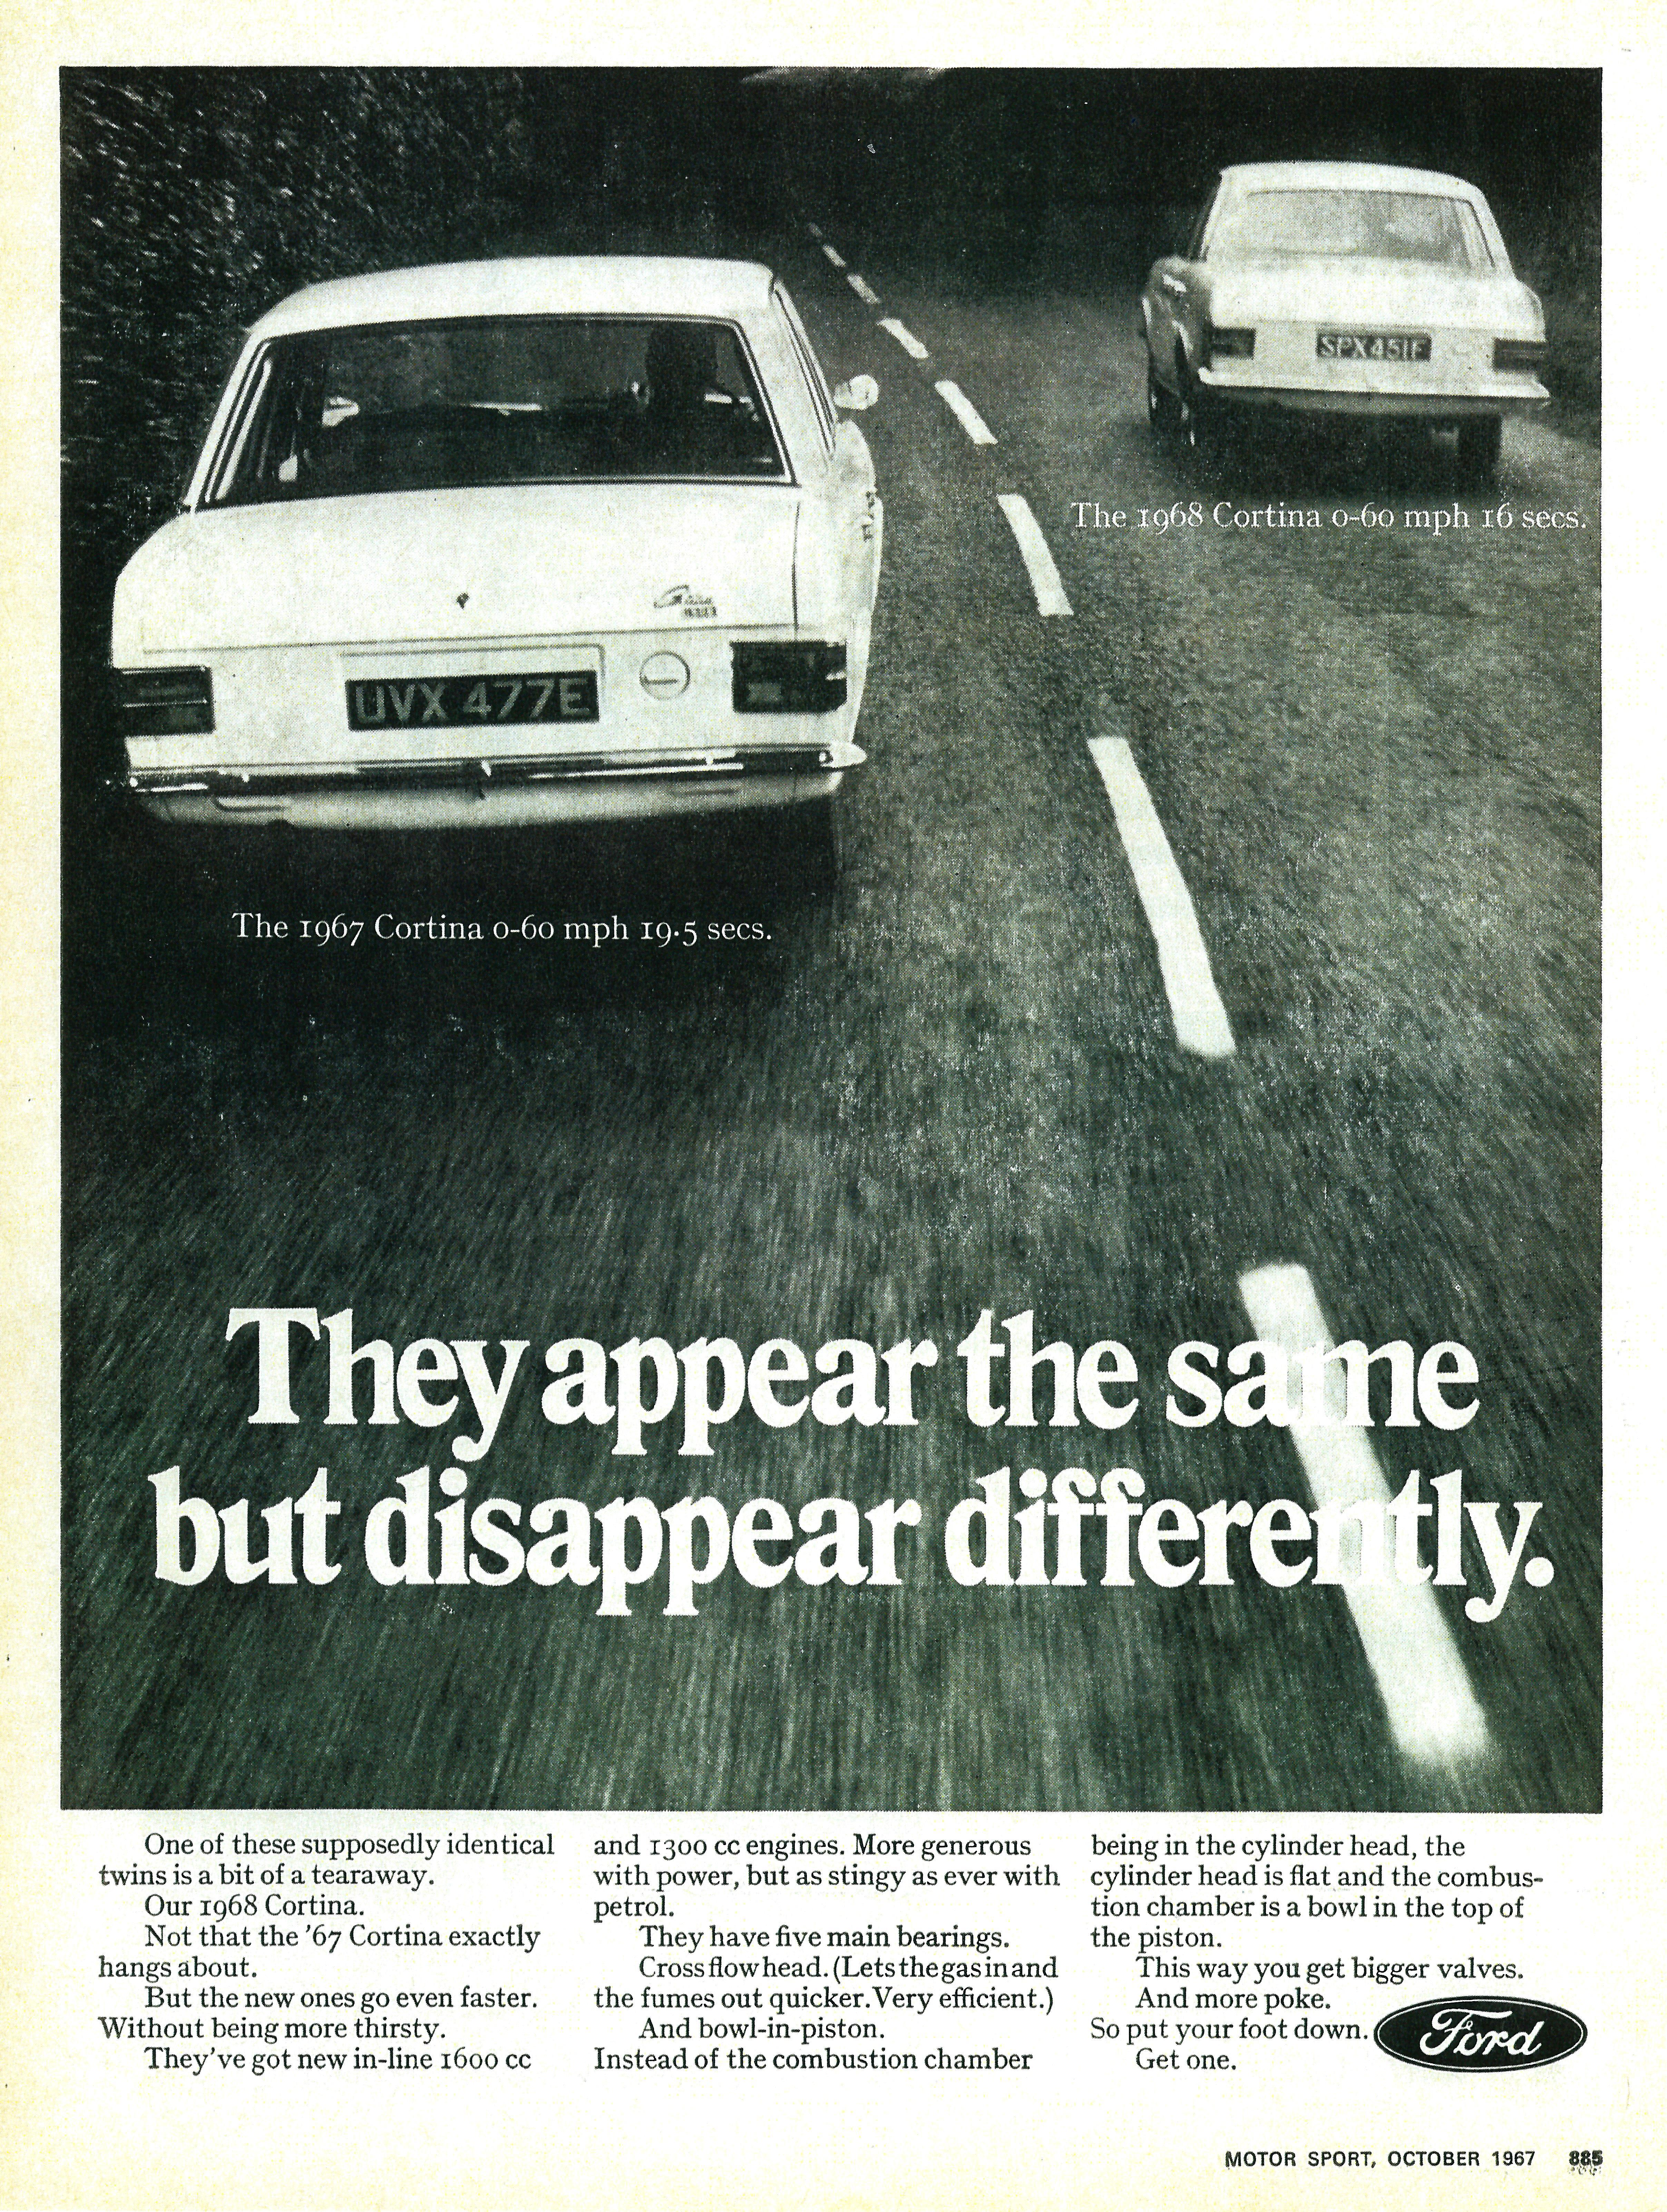 UK Ford Cortina ad from 1968.